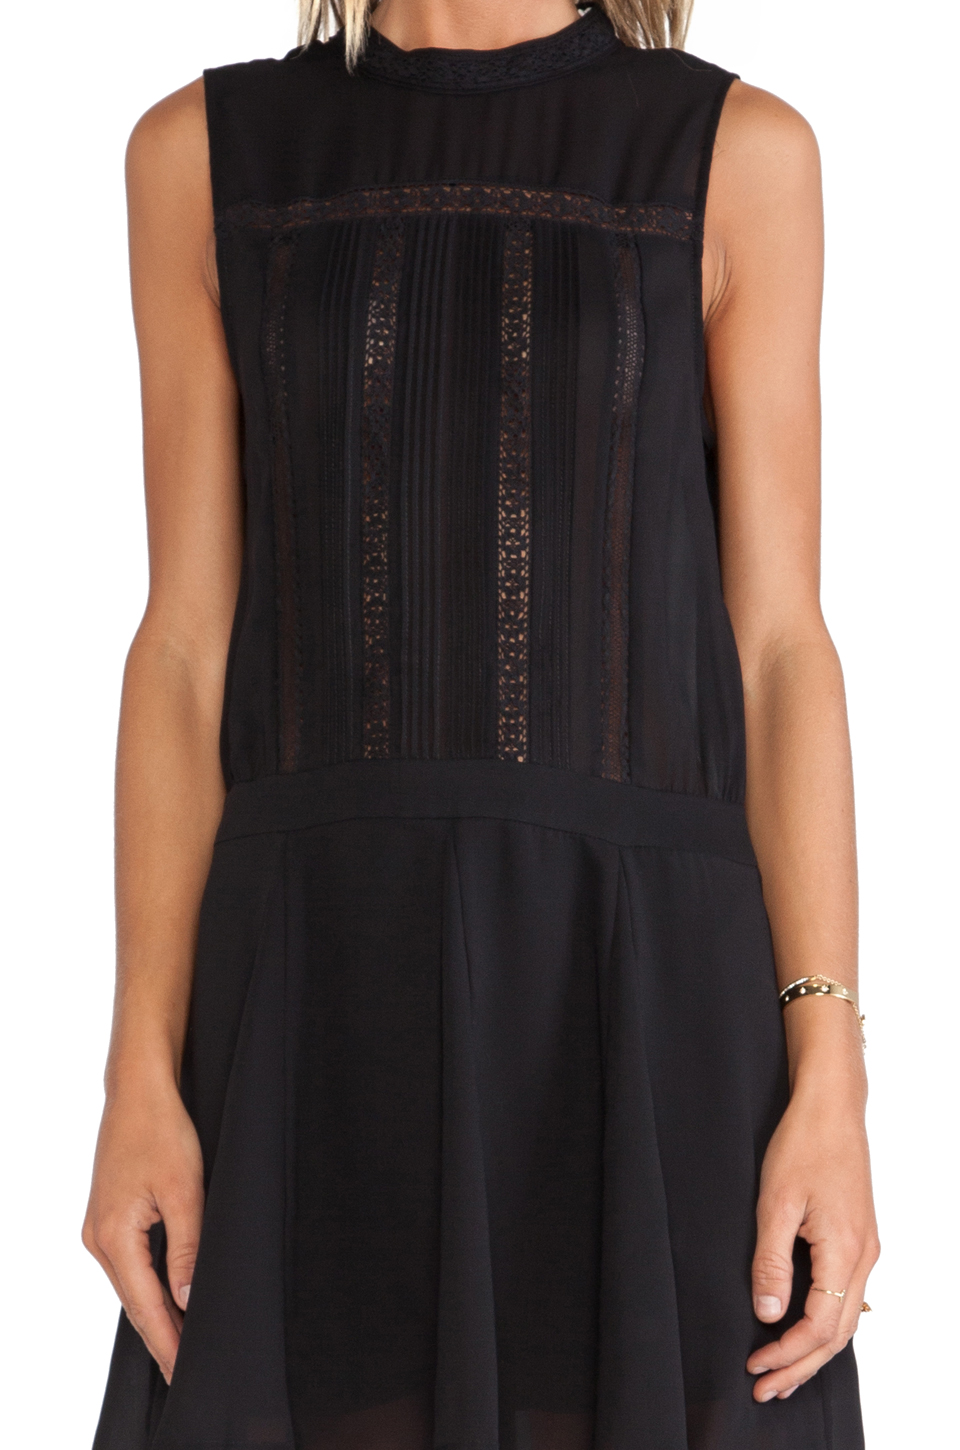 Heartloom yuko dress in black from revolveclothing.com